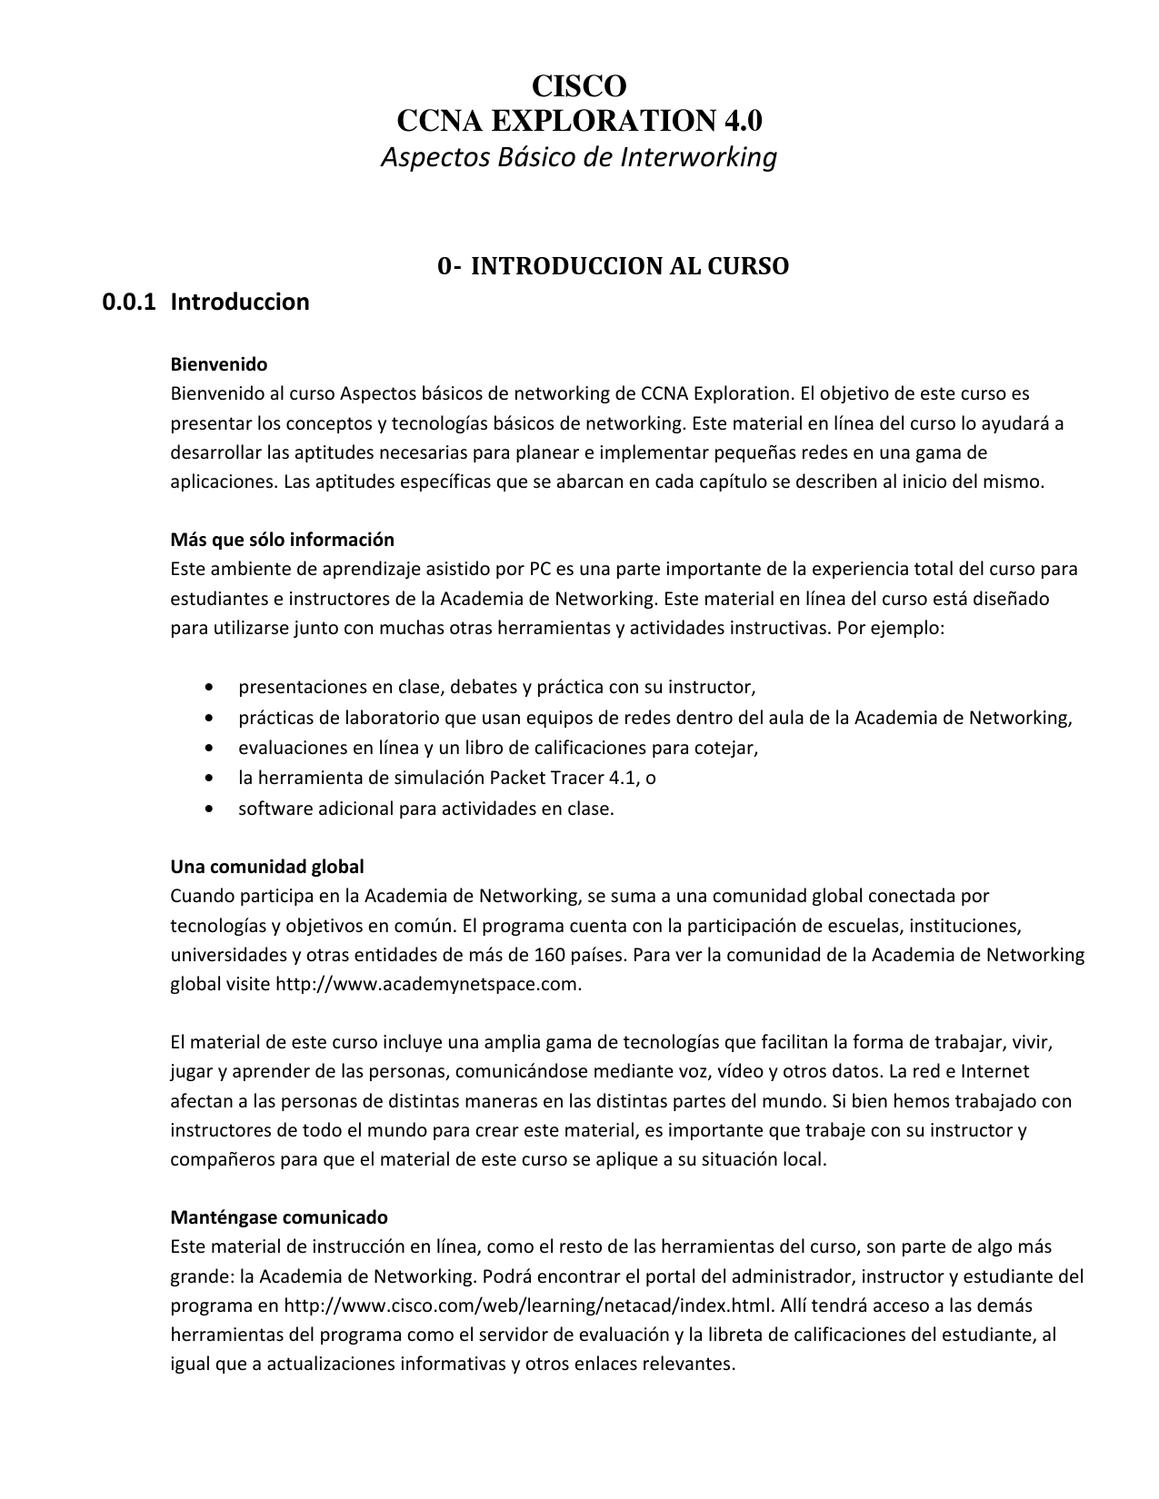 CCNA-1-Cisco by Nicolas vargas1 - issuu